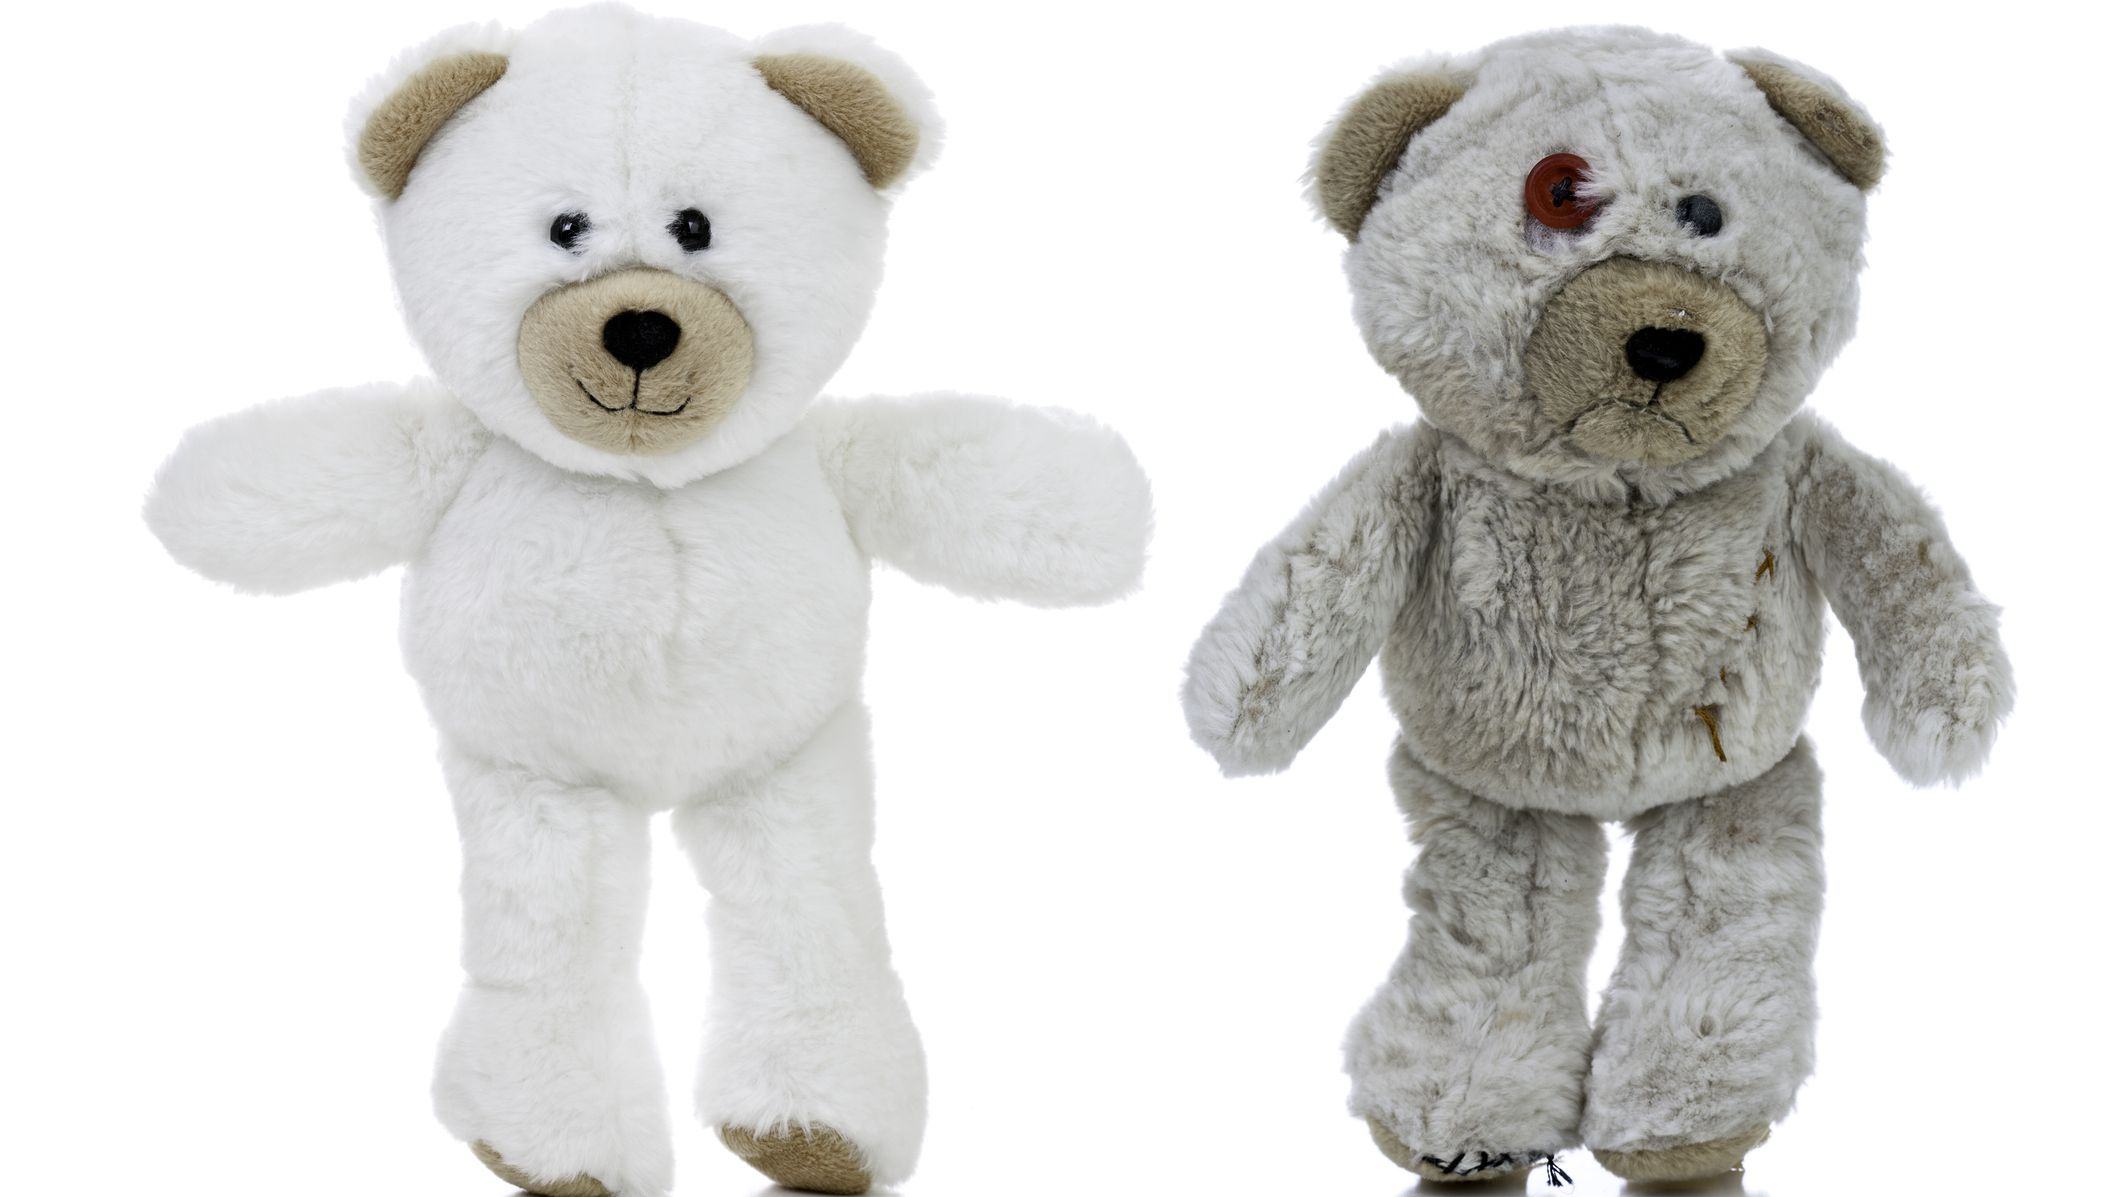 How To Clean Large Stuffed Animals And Teddy Bears